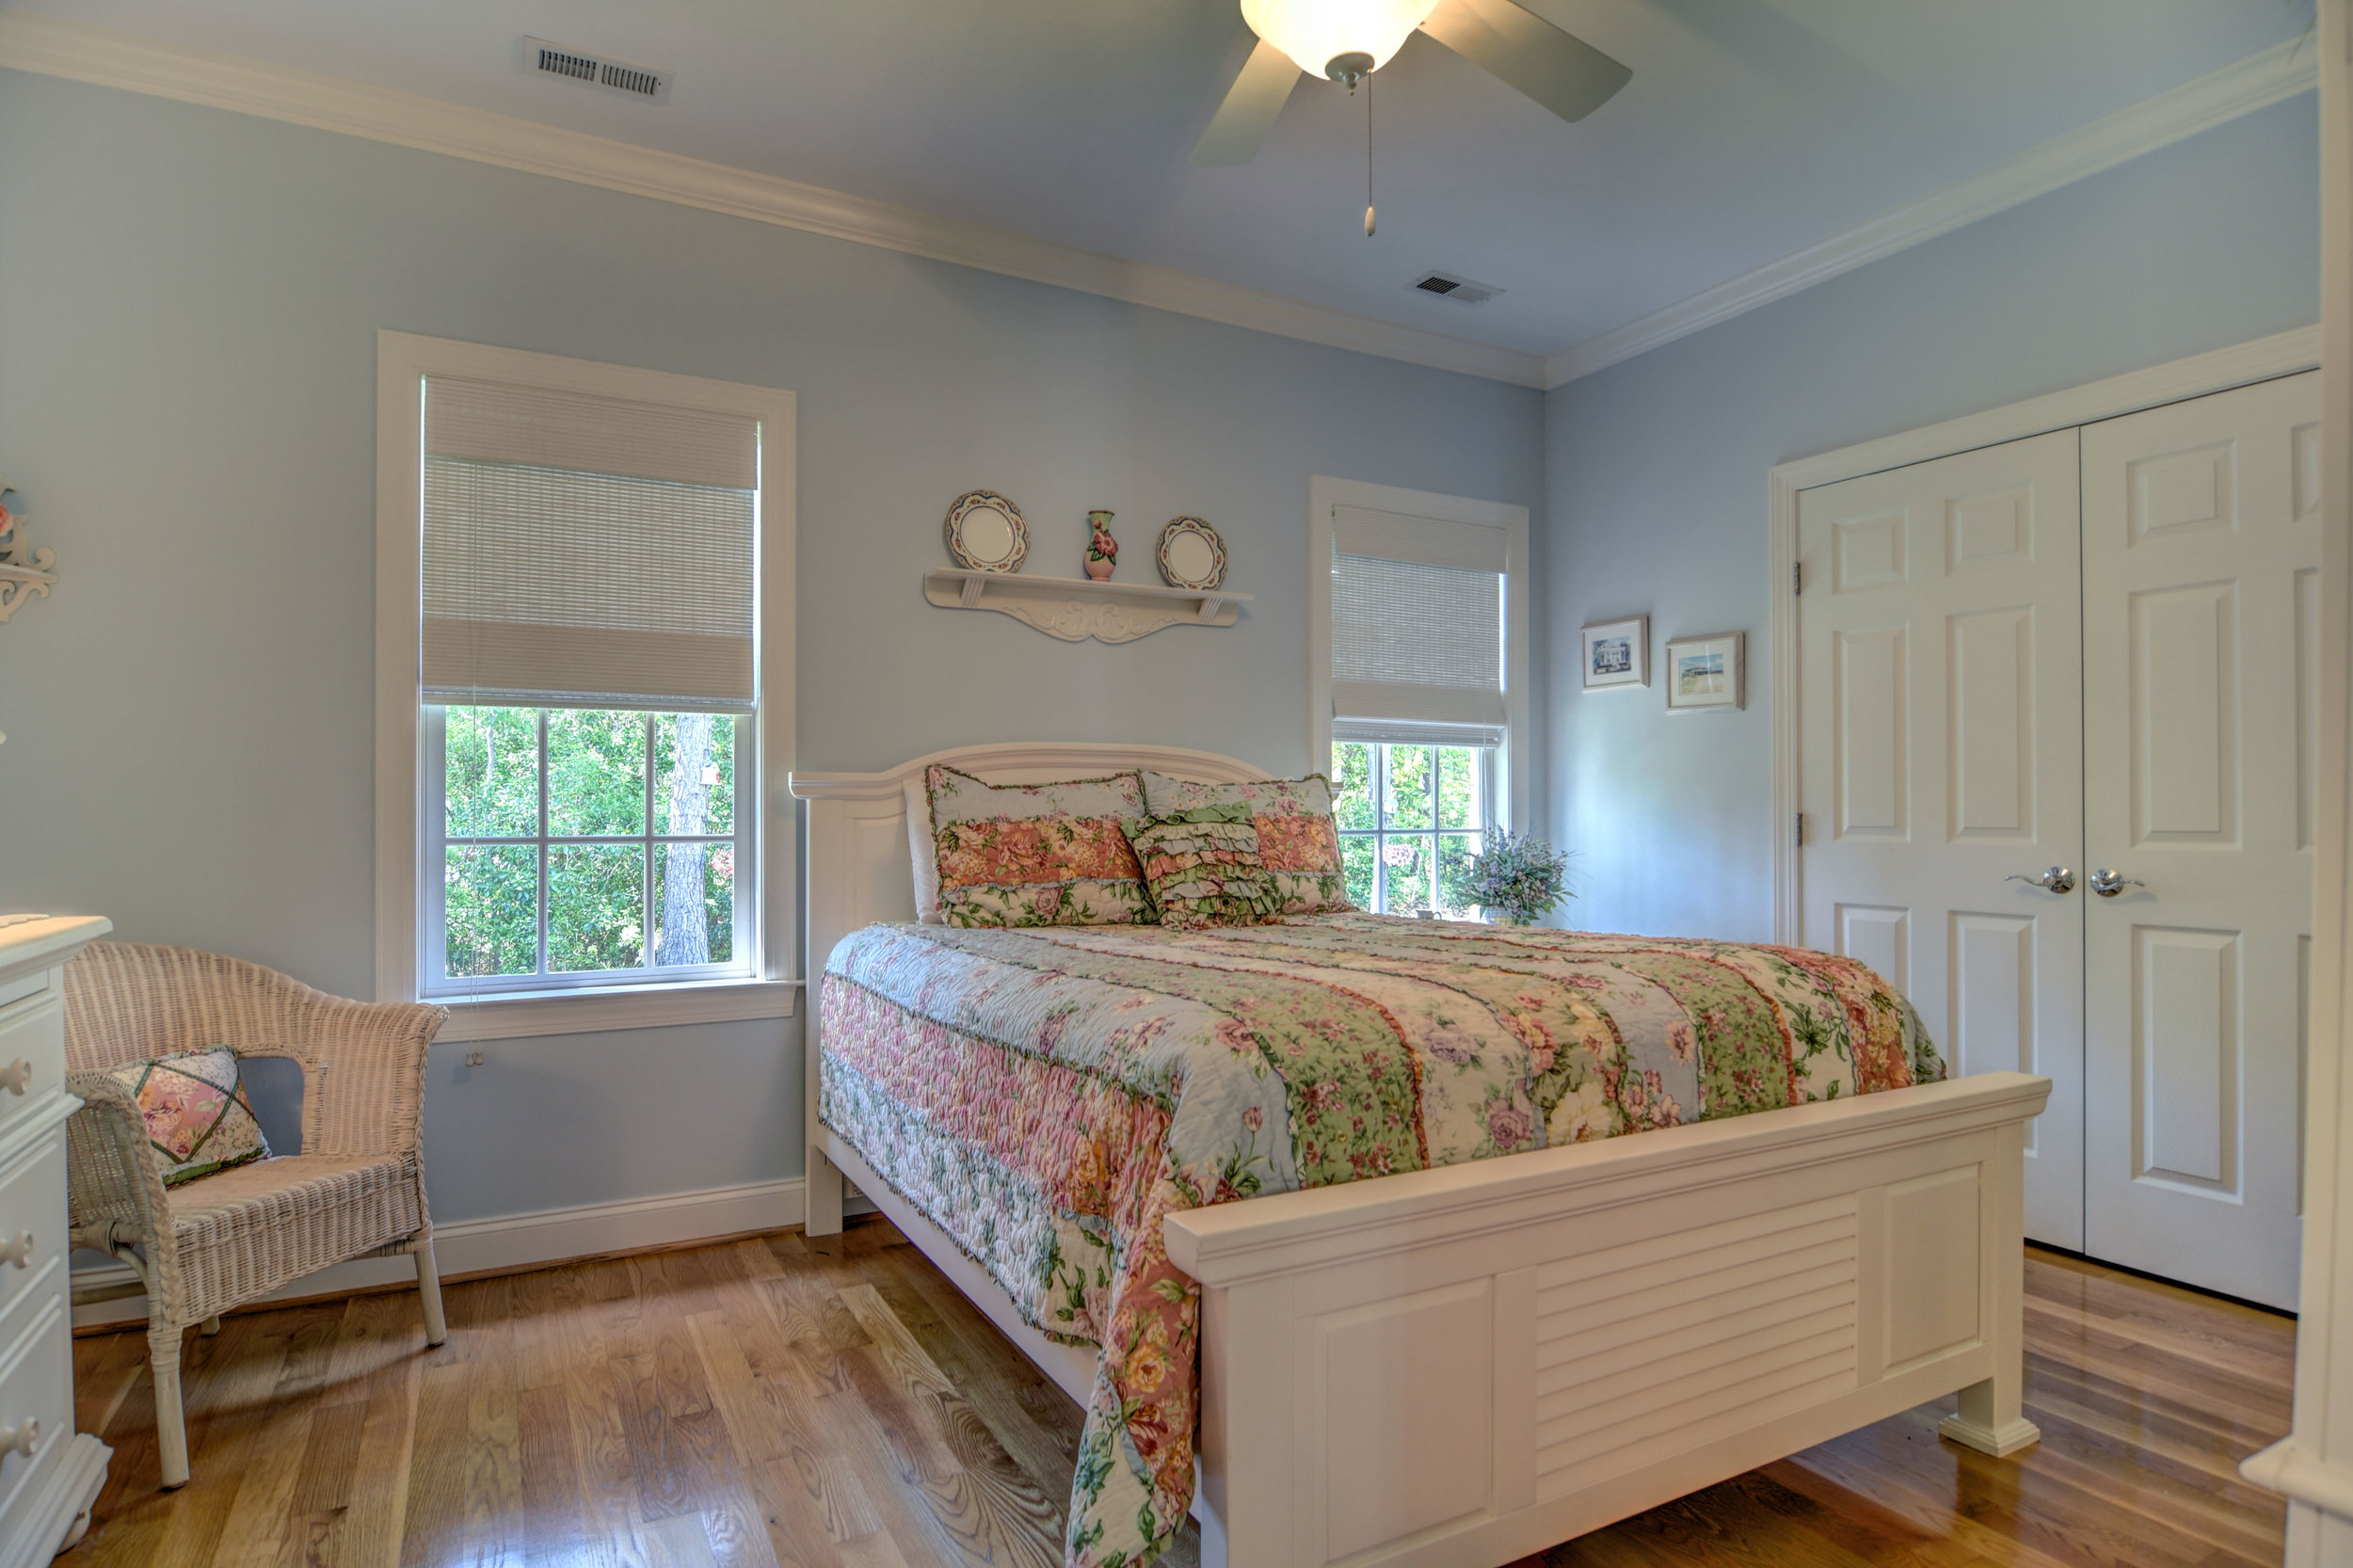 2114 Bay Colony Ln Wilmington-print-024-31-Bedroom 4-4200x2799-300dpi.jpg